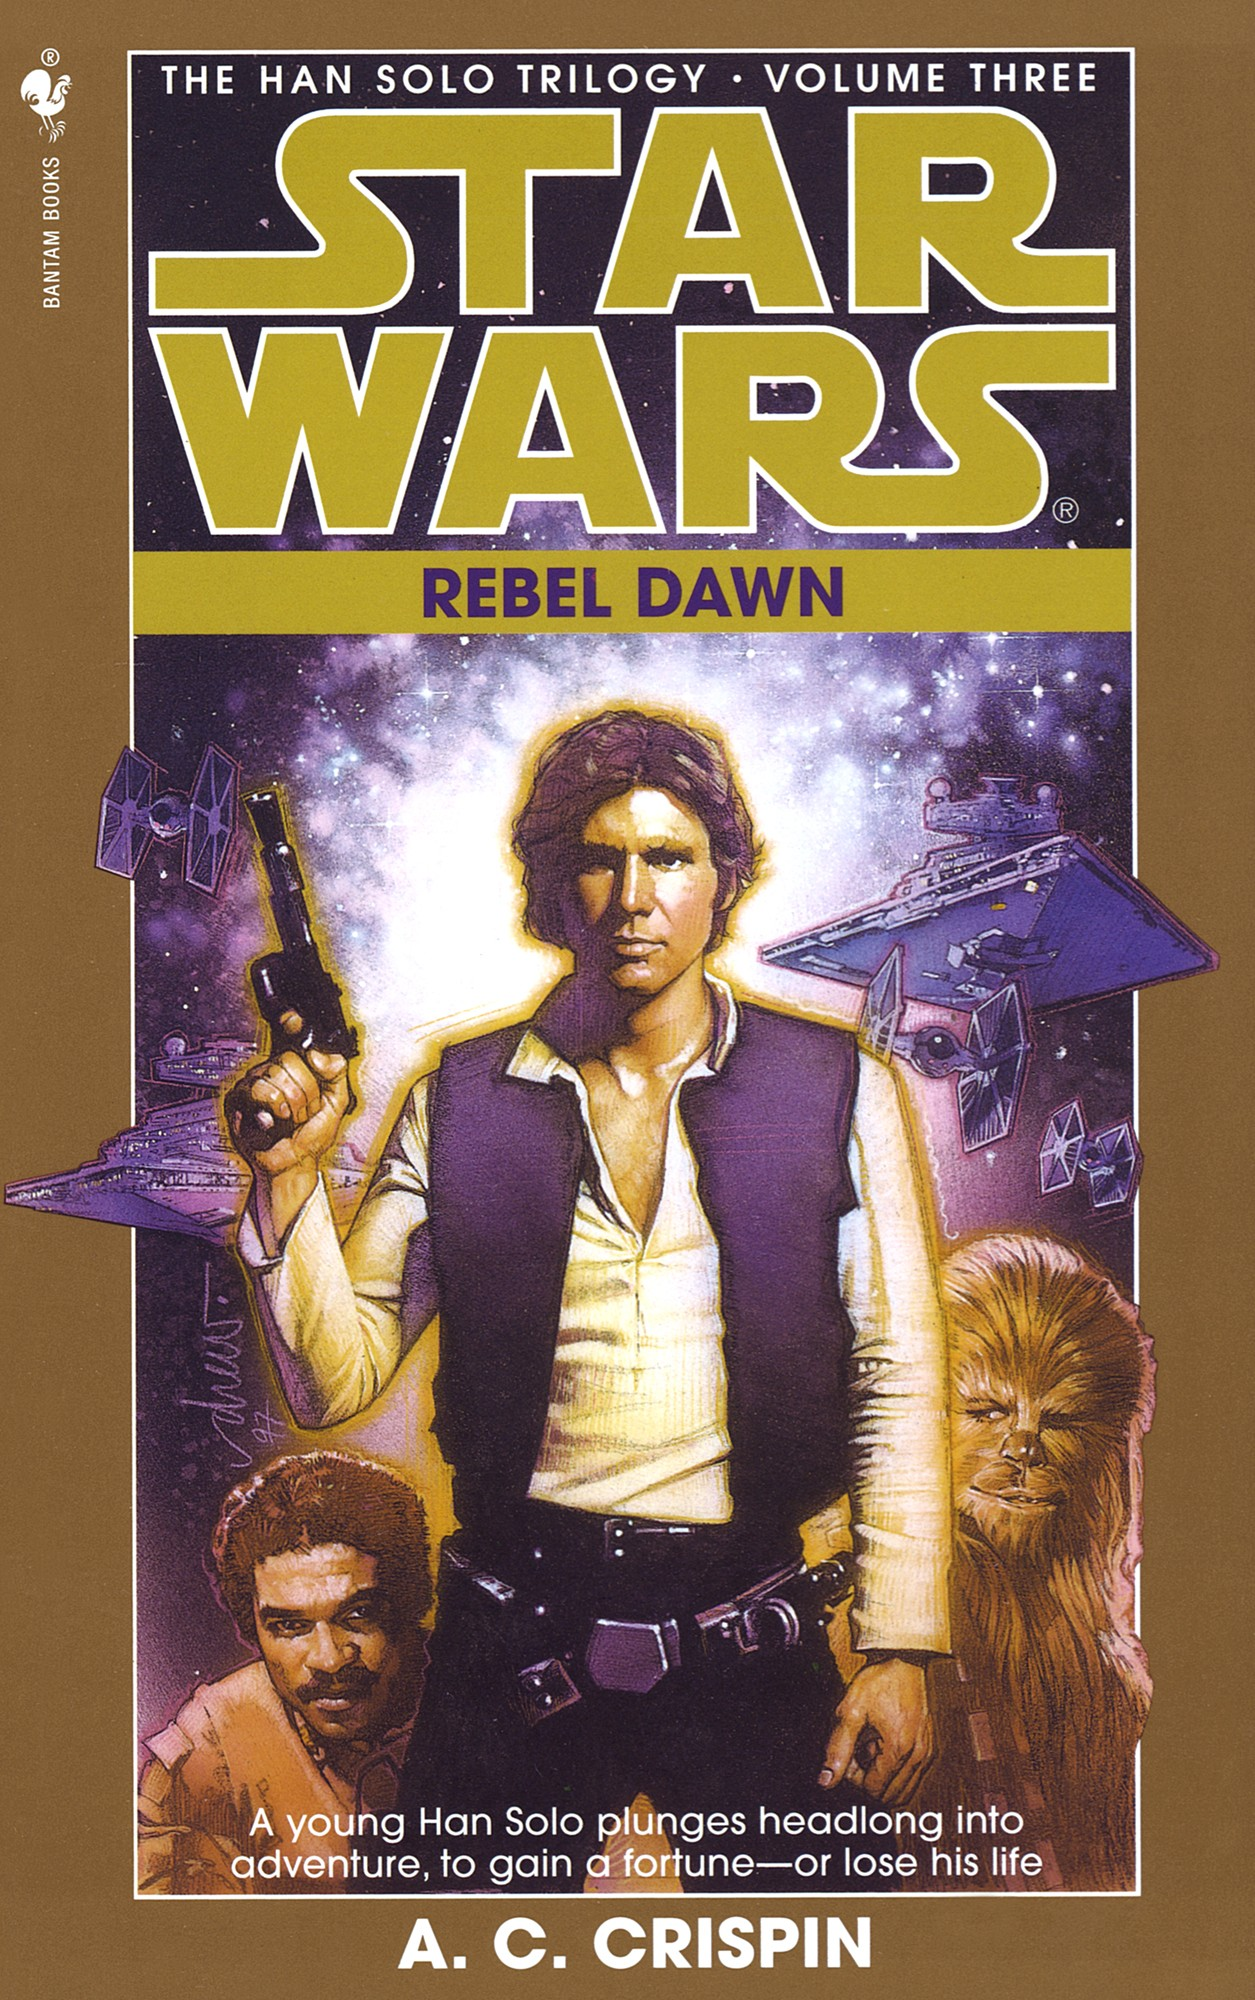 Fájl:Rebel Dawn cover.jpg